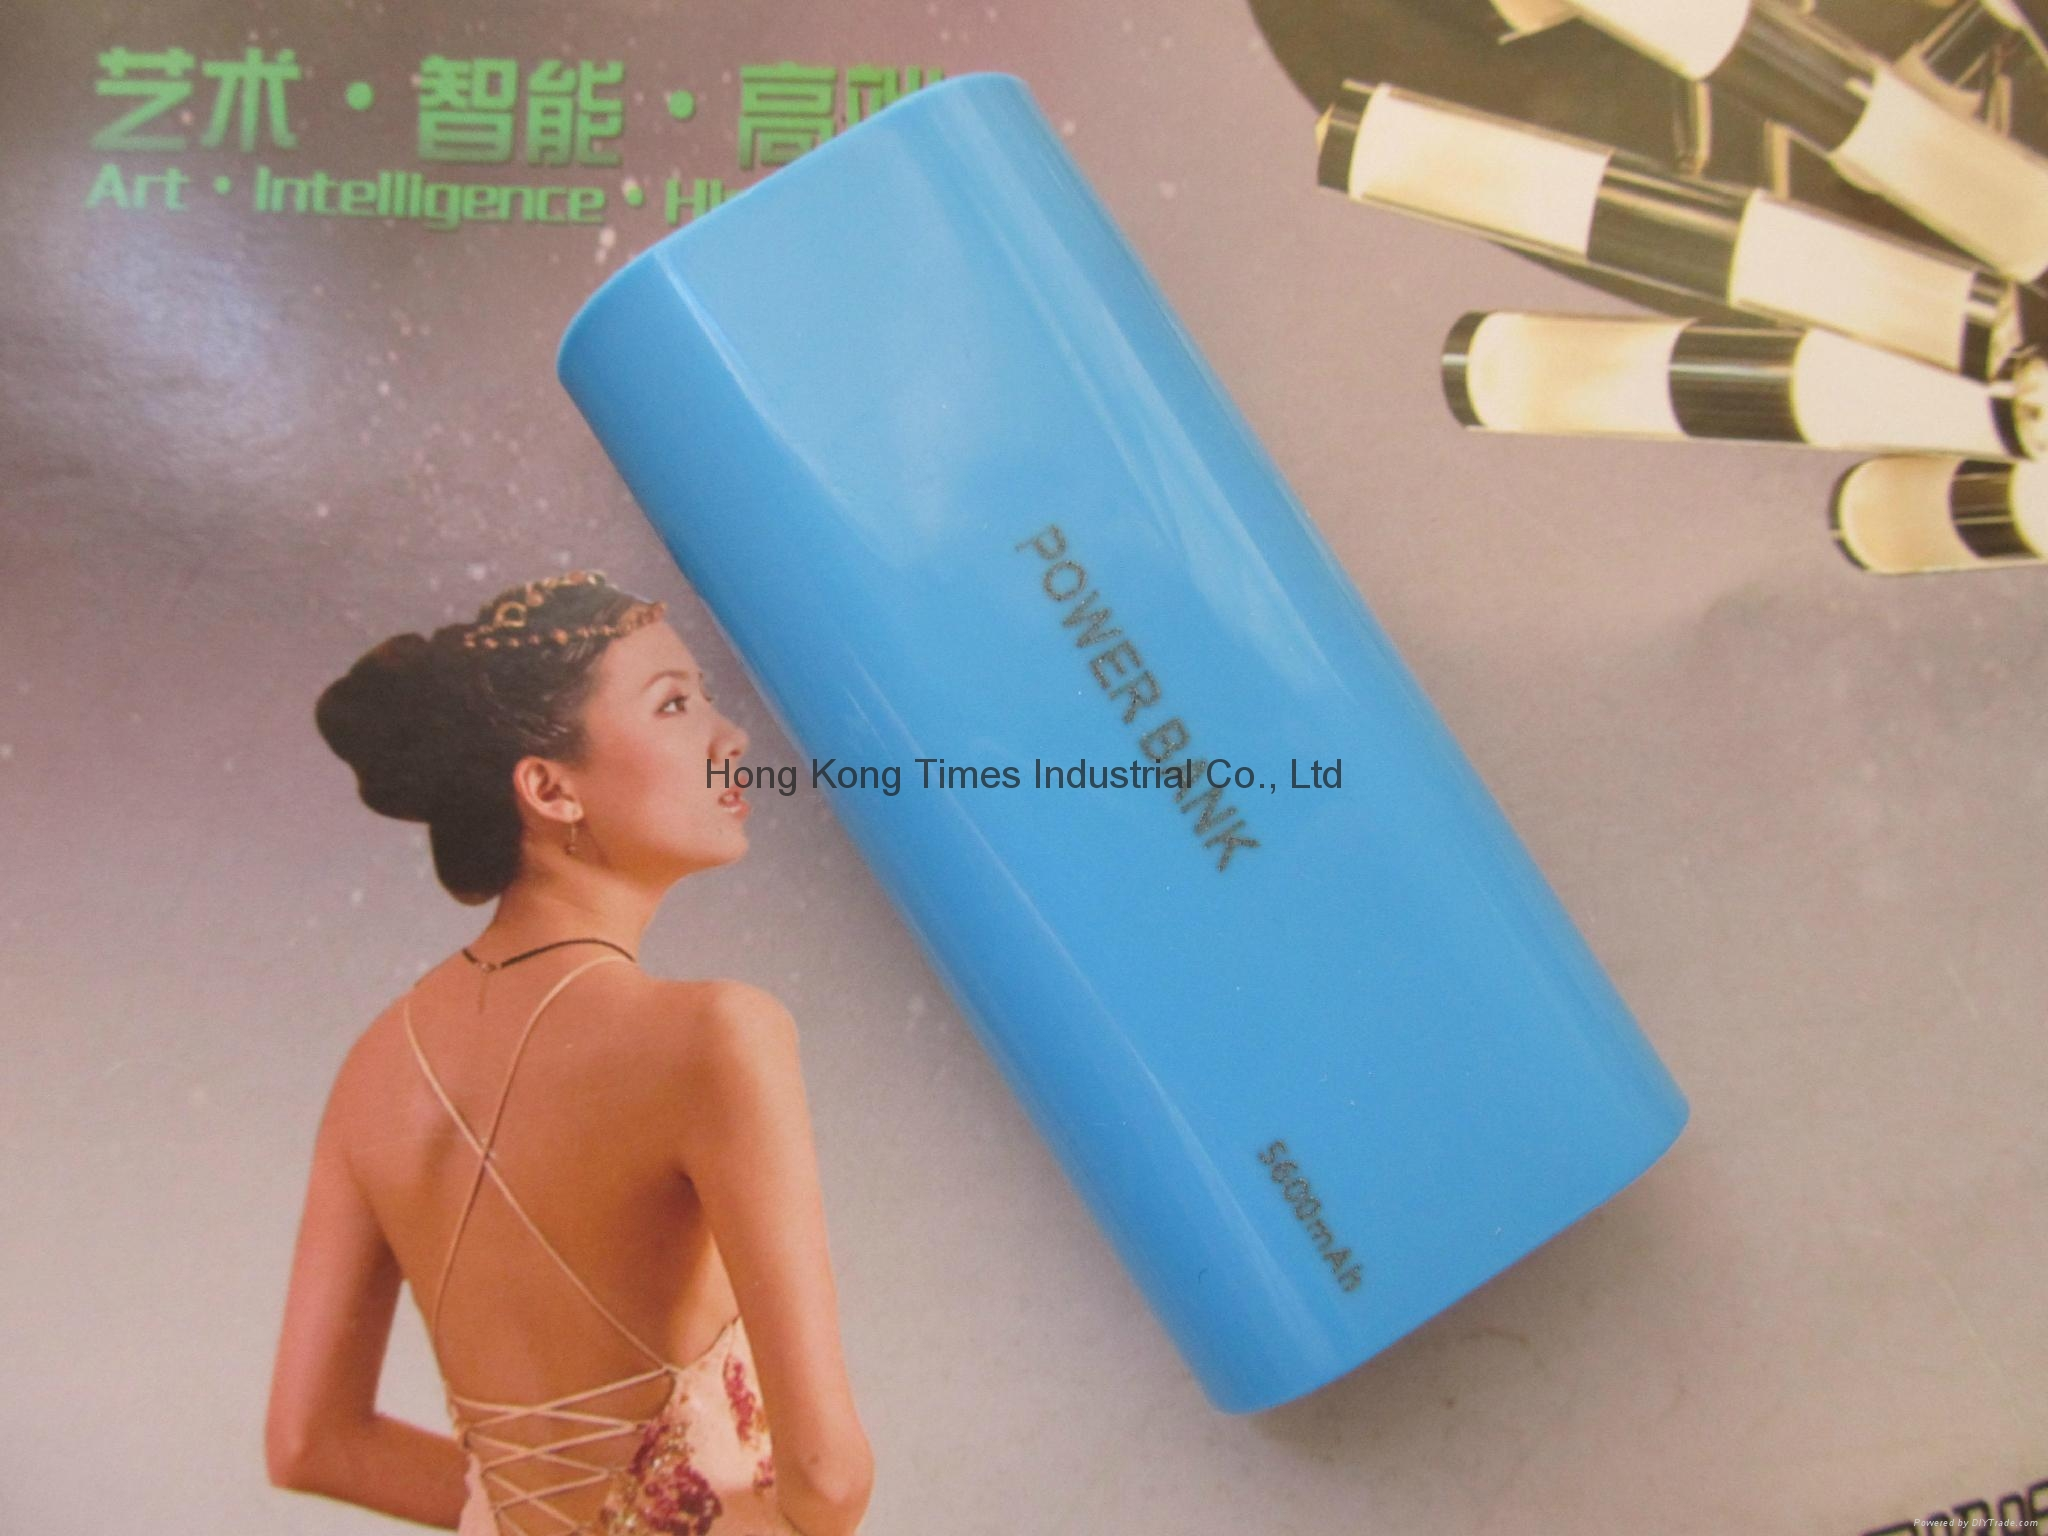 External Portable Battery Power Bank Charger For iPhone 6 6 Plus 5 5s 5c For S6 4